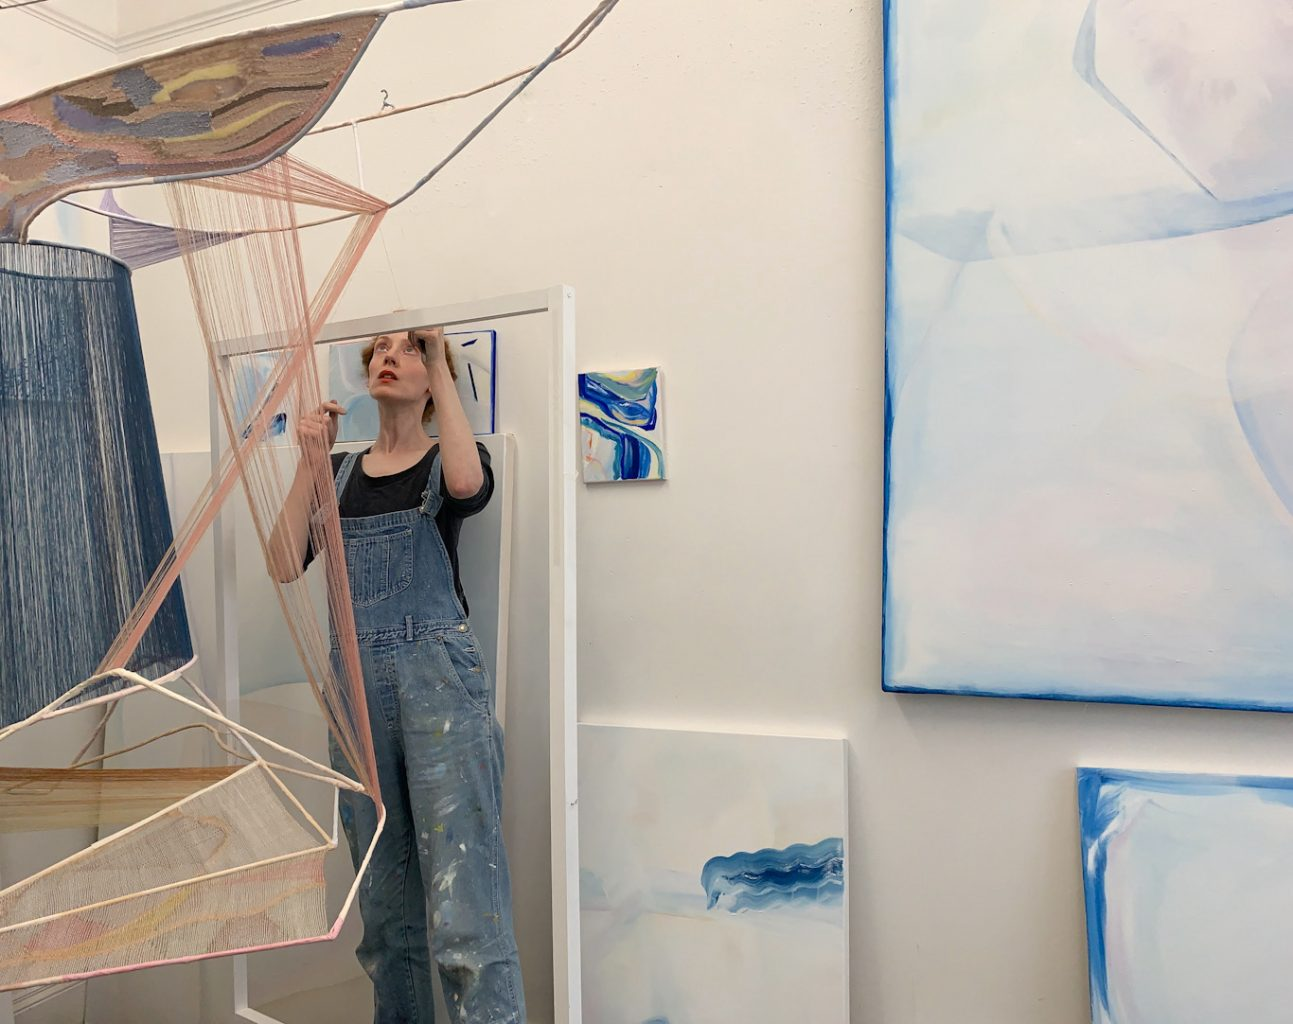 Artist stood working at an art work hanging from the studio ceiling, with artworks on the walls